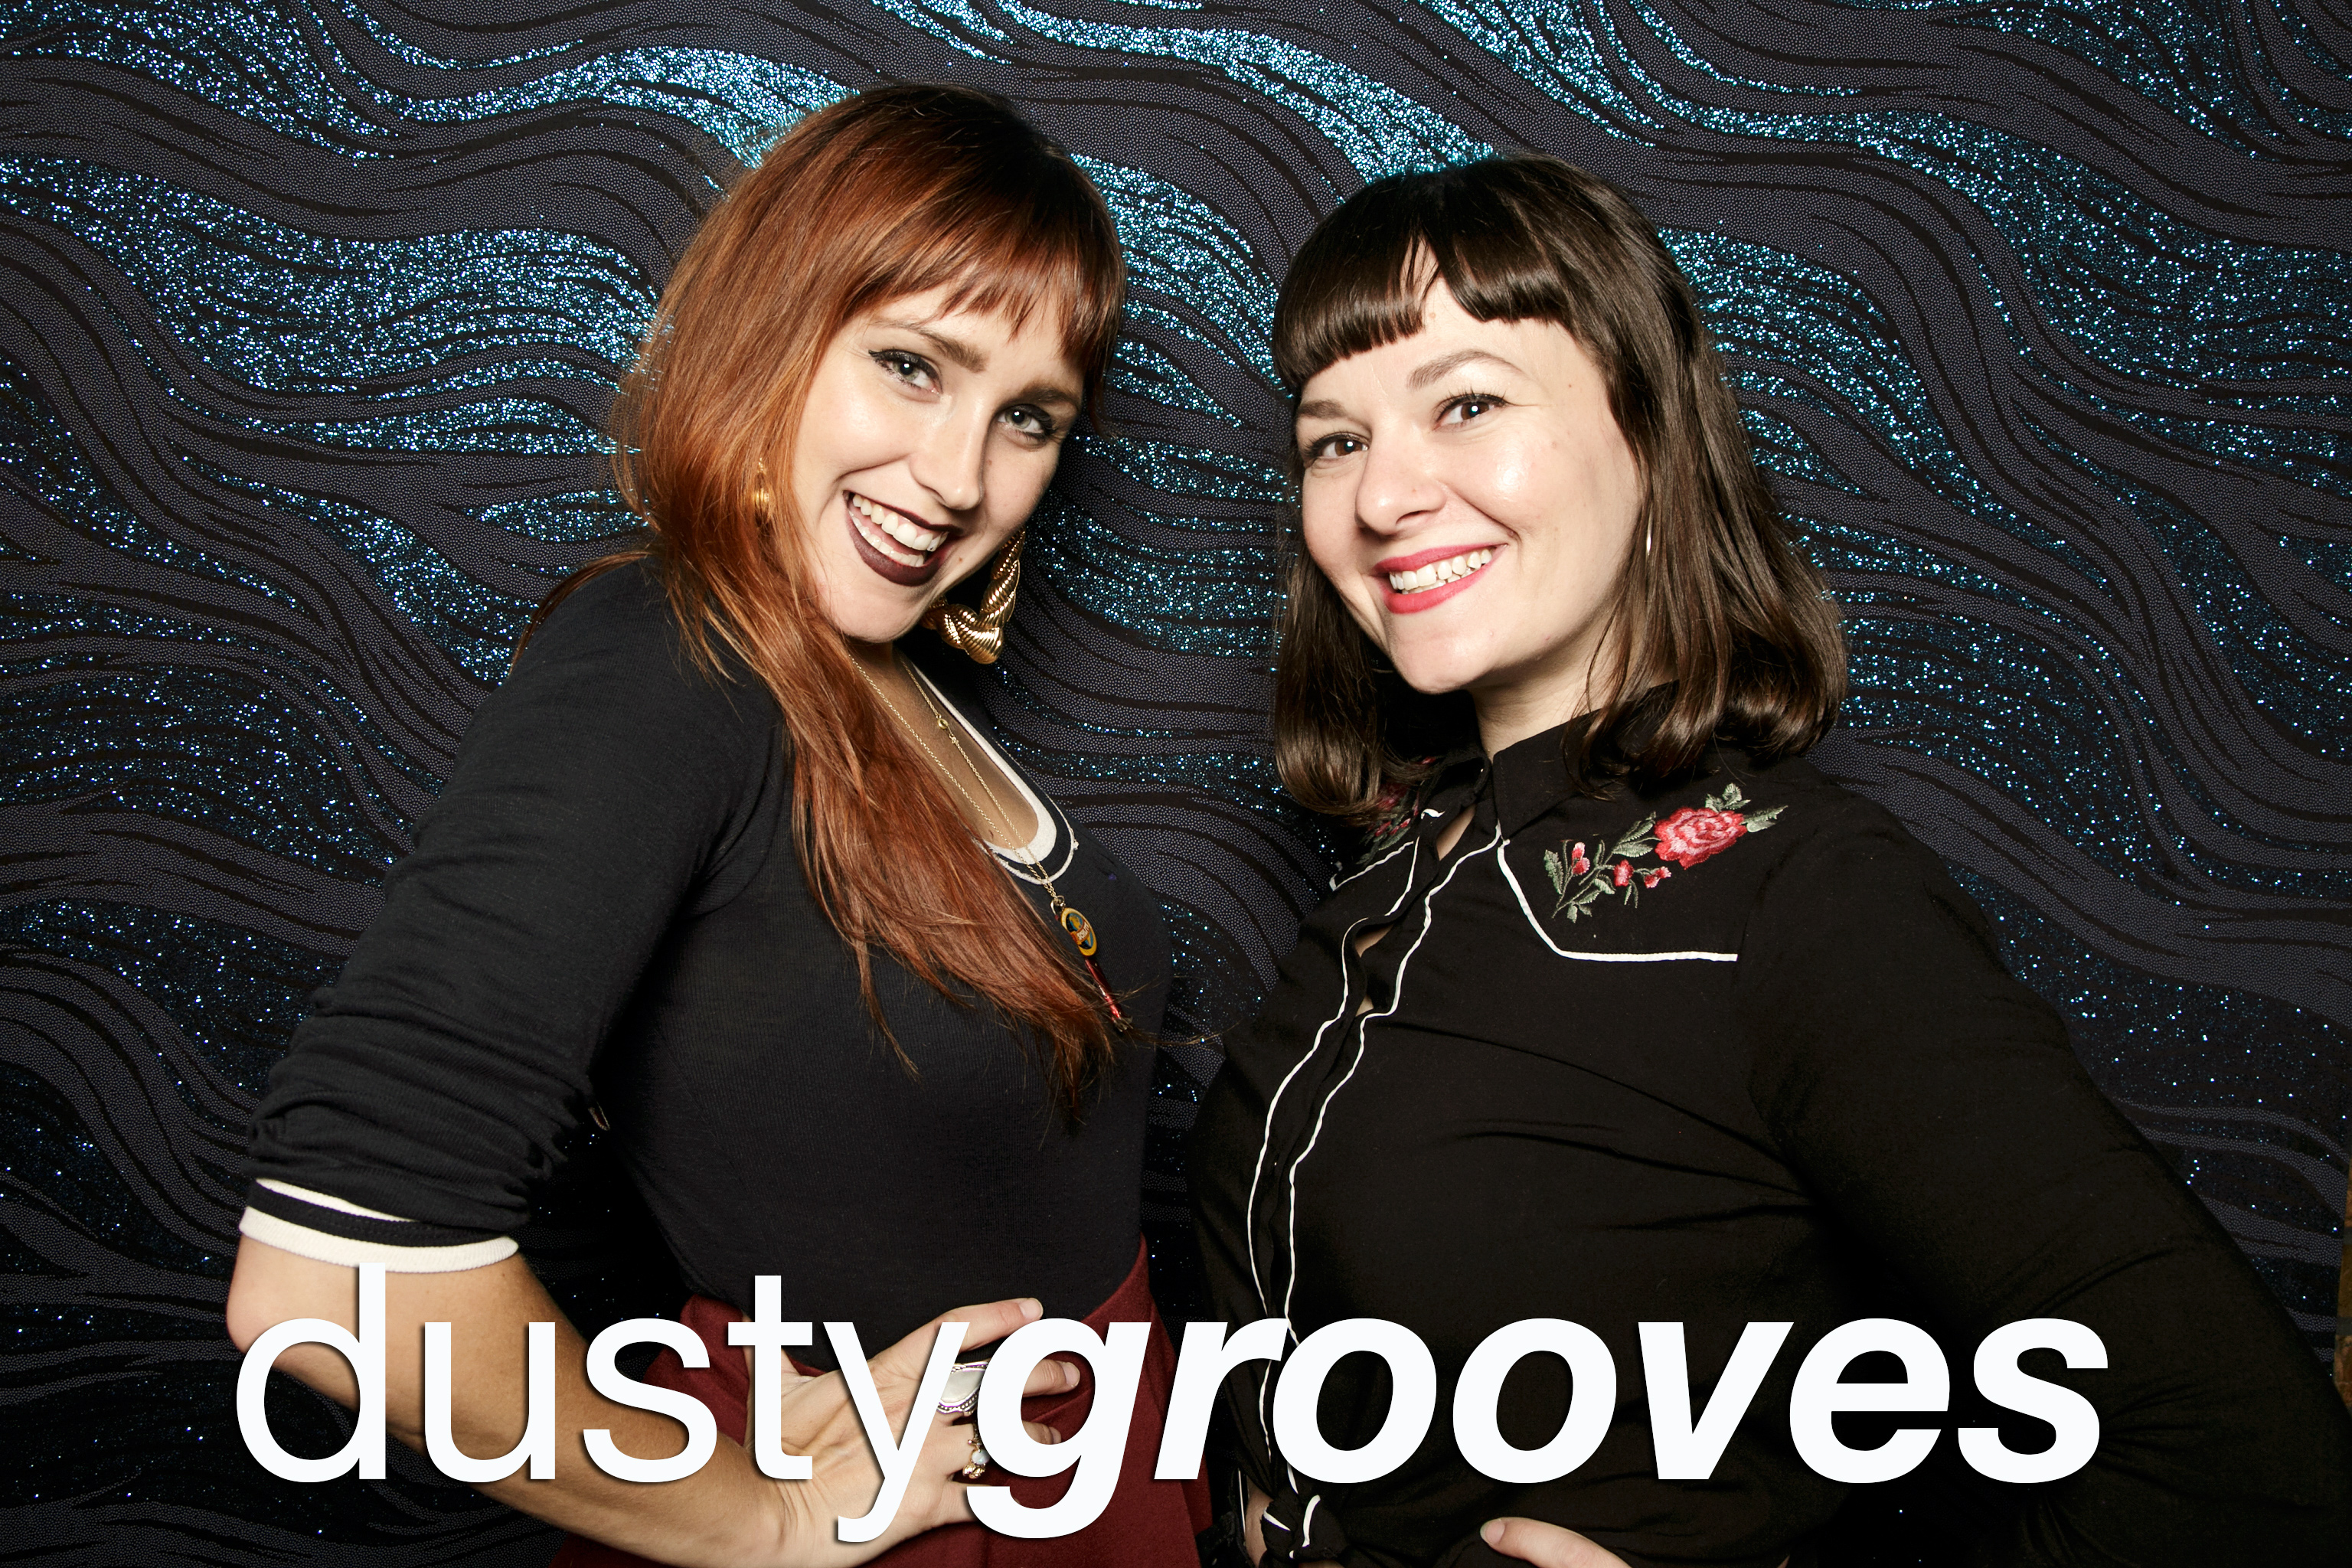 portrait booth photos from dusty grooves, august 2017